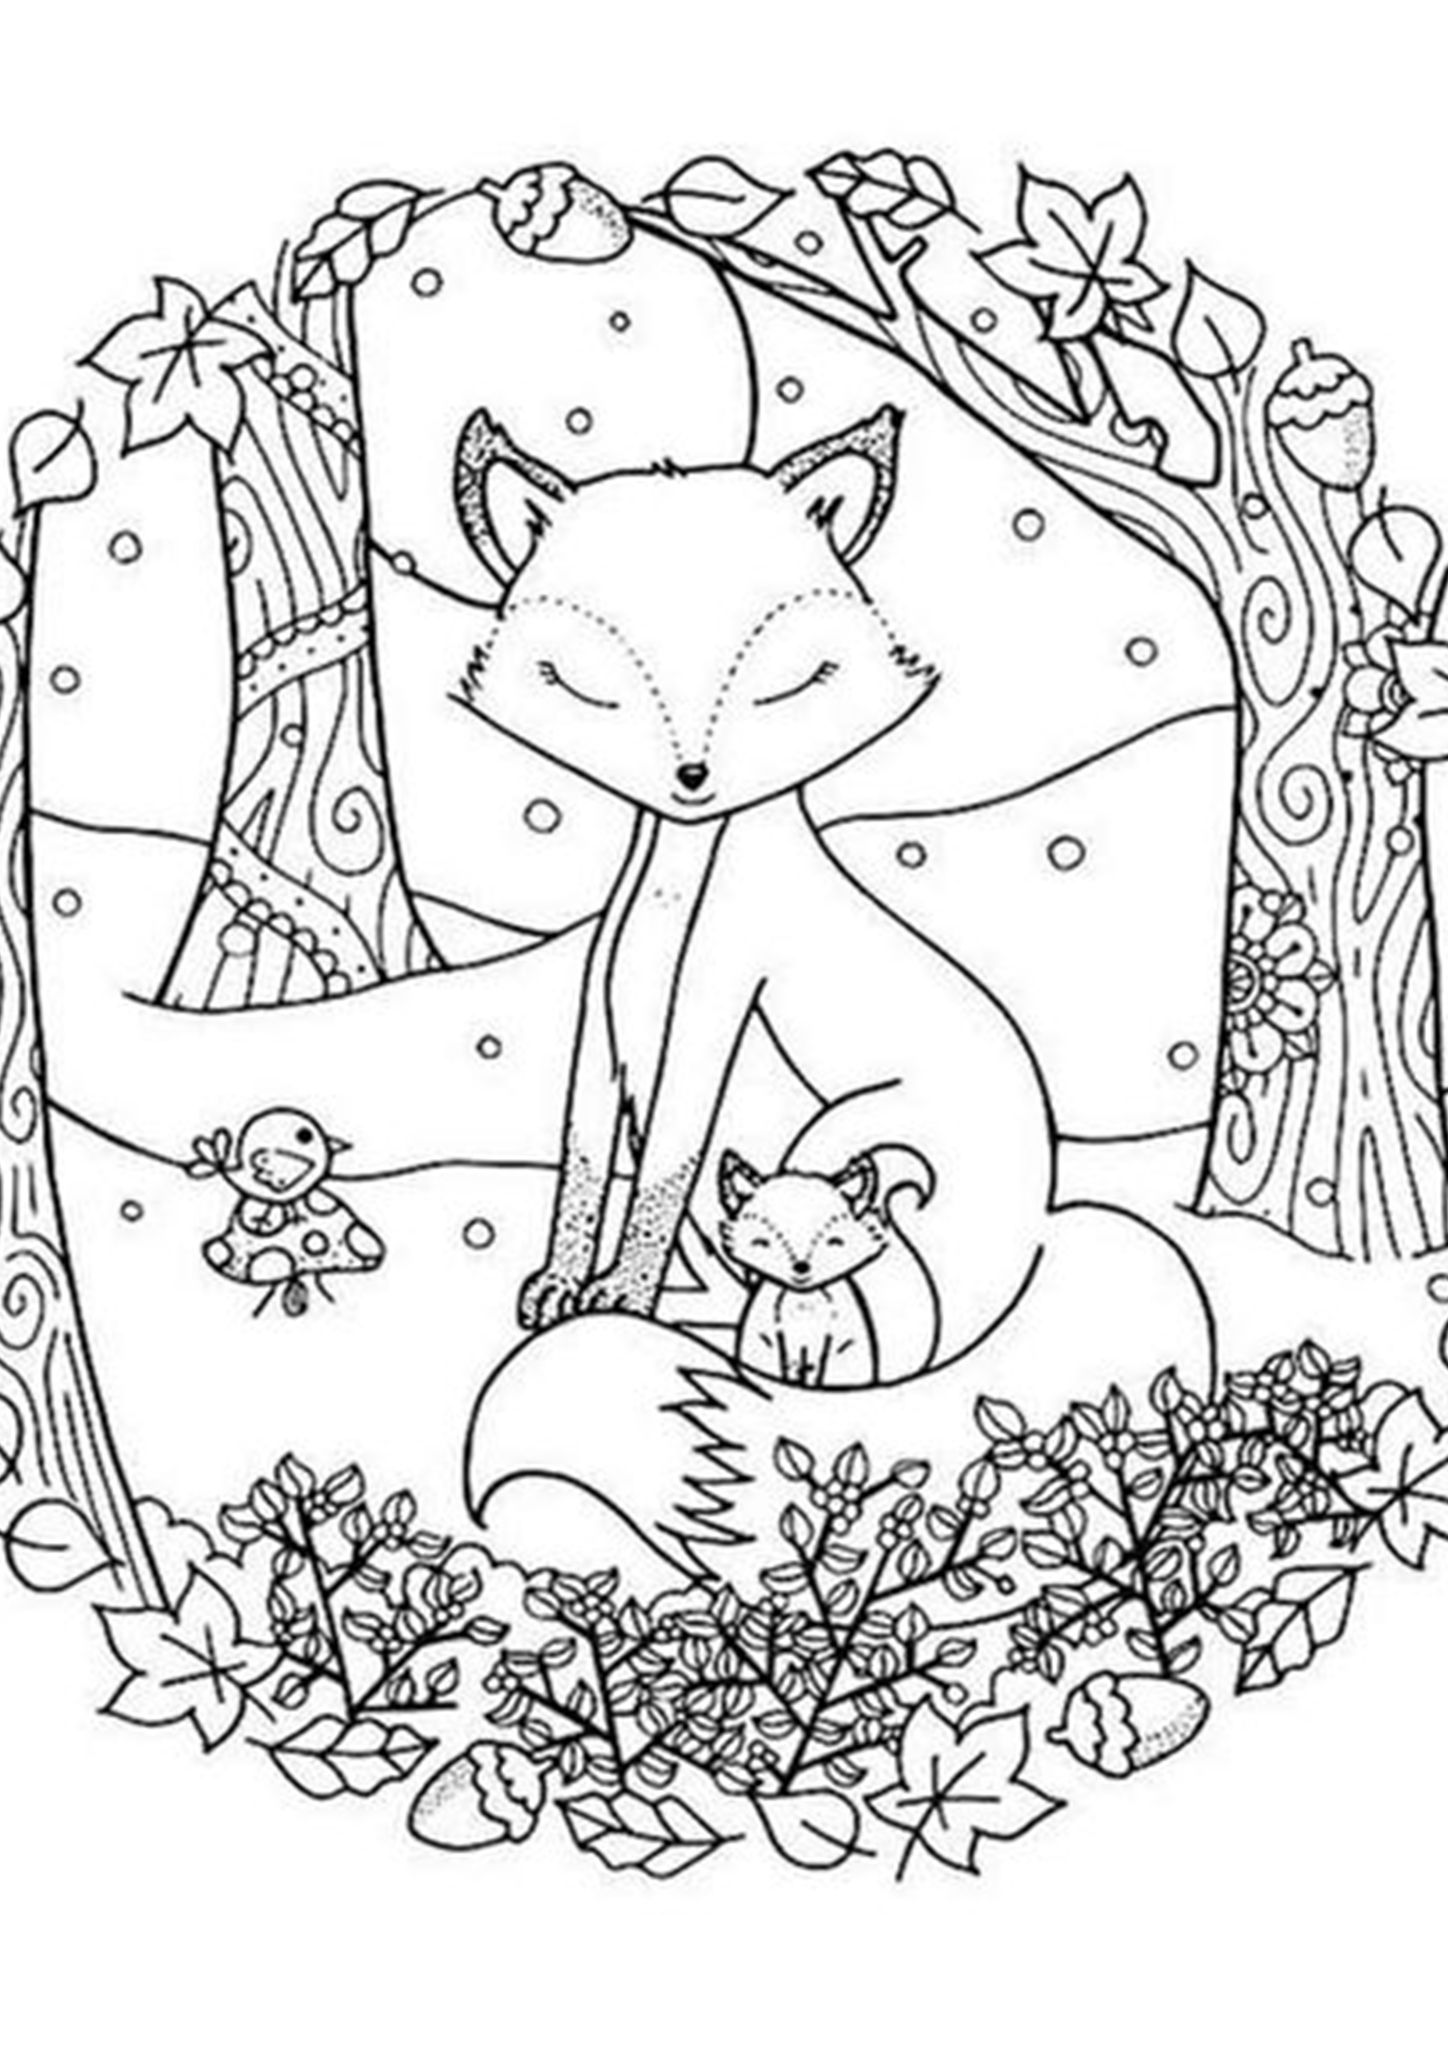 Free Easy To Print Fox Coloring Pages In 2020 Coloring Pages Winter Fox Coloring Page Animal Coloring Pages